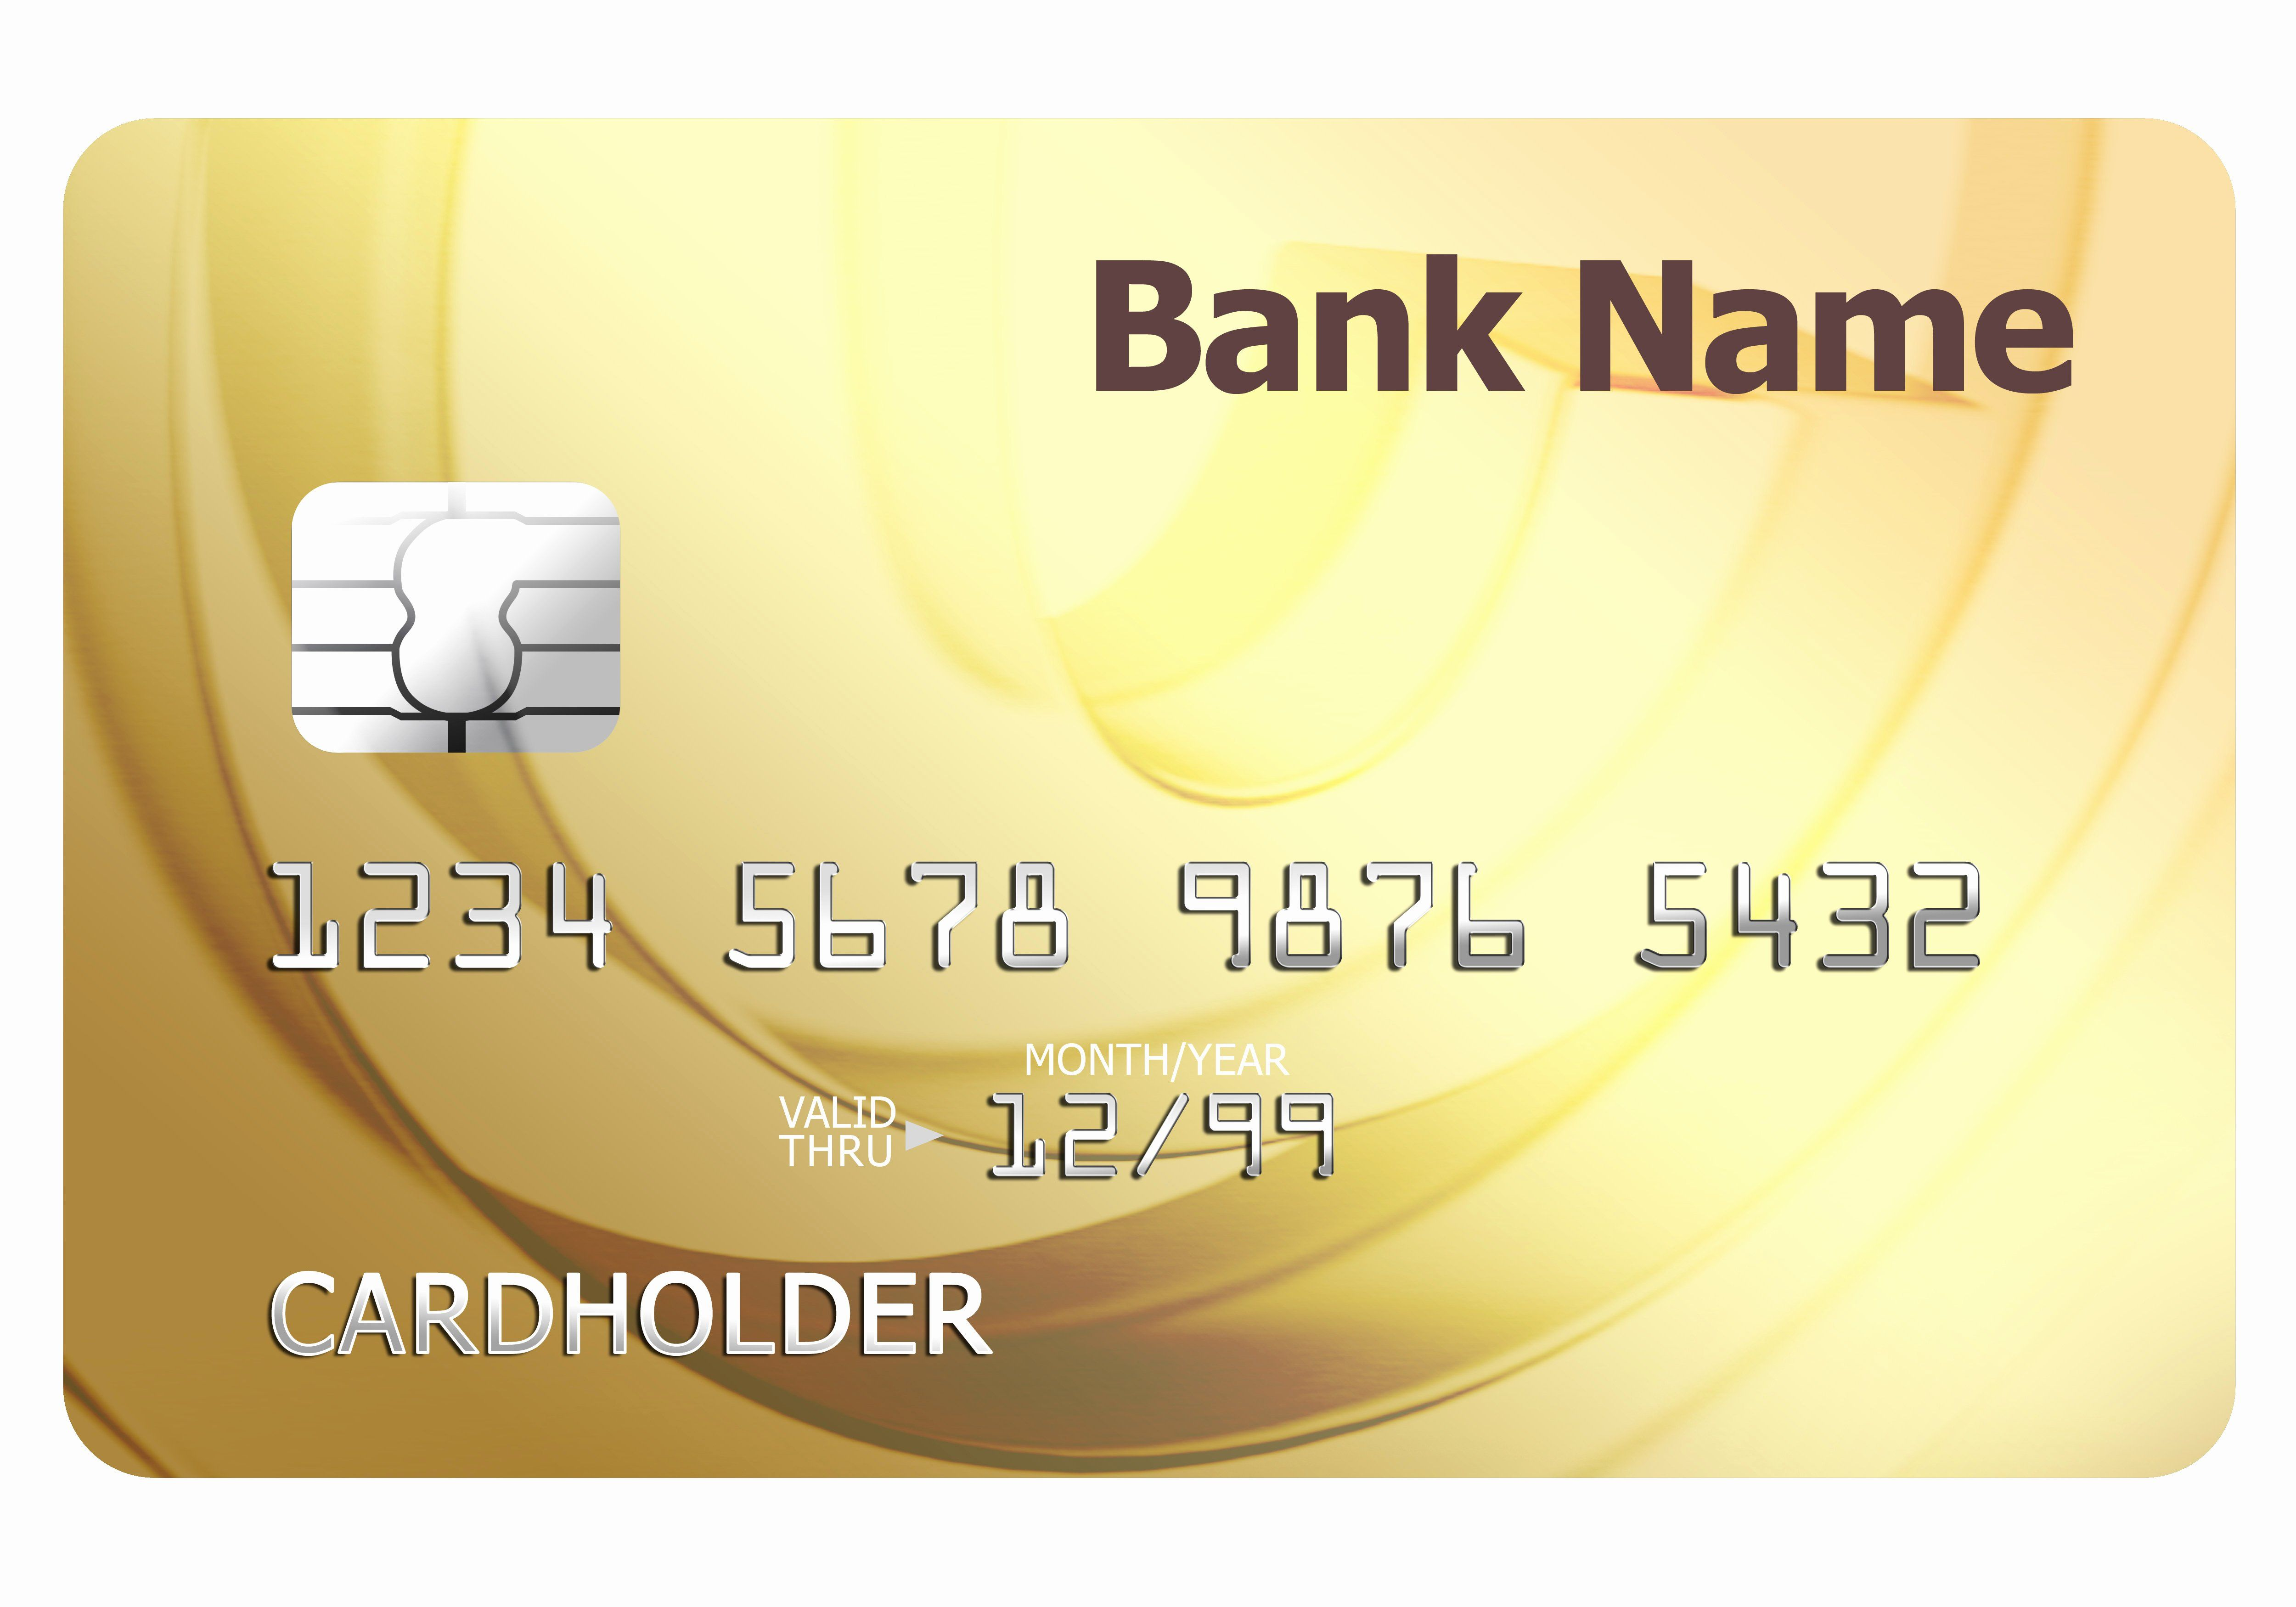 Blank Credit Card Template Elegant Credit Card Template Credit Card Design Credit Card Statement Gold Credit Card